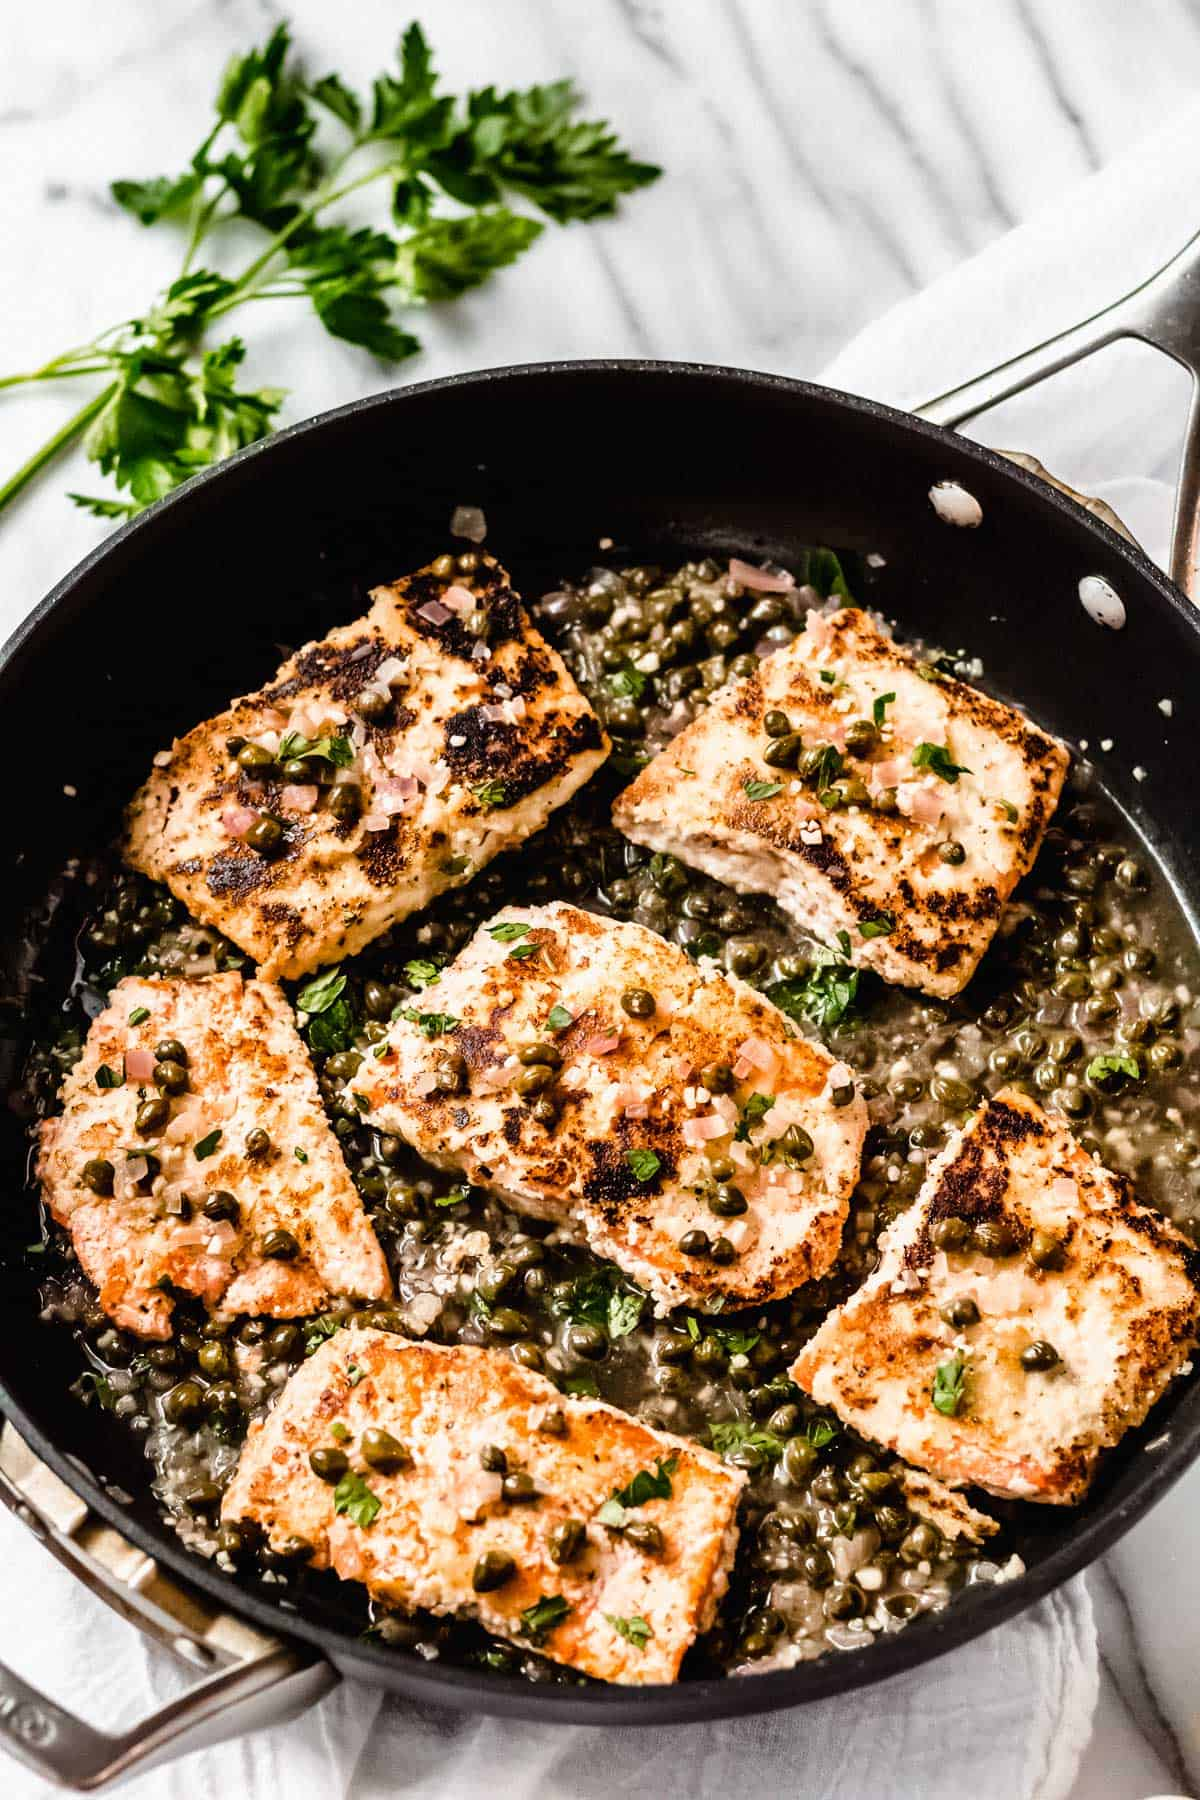 Salmon piccata in a black skillet with parsley in the background